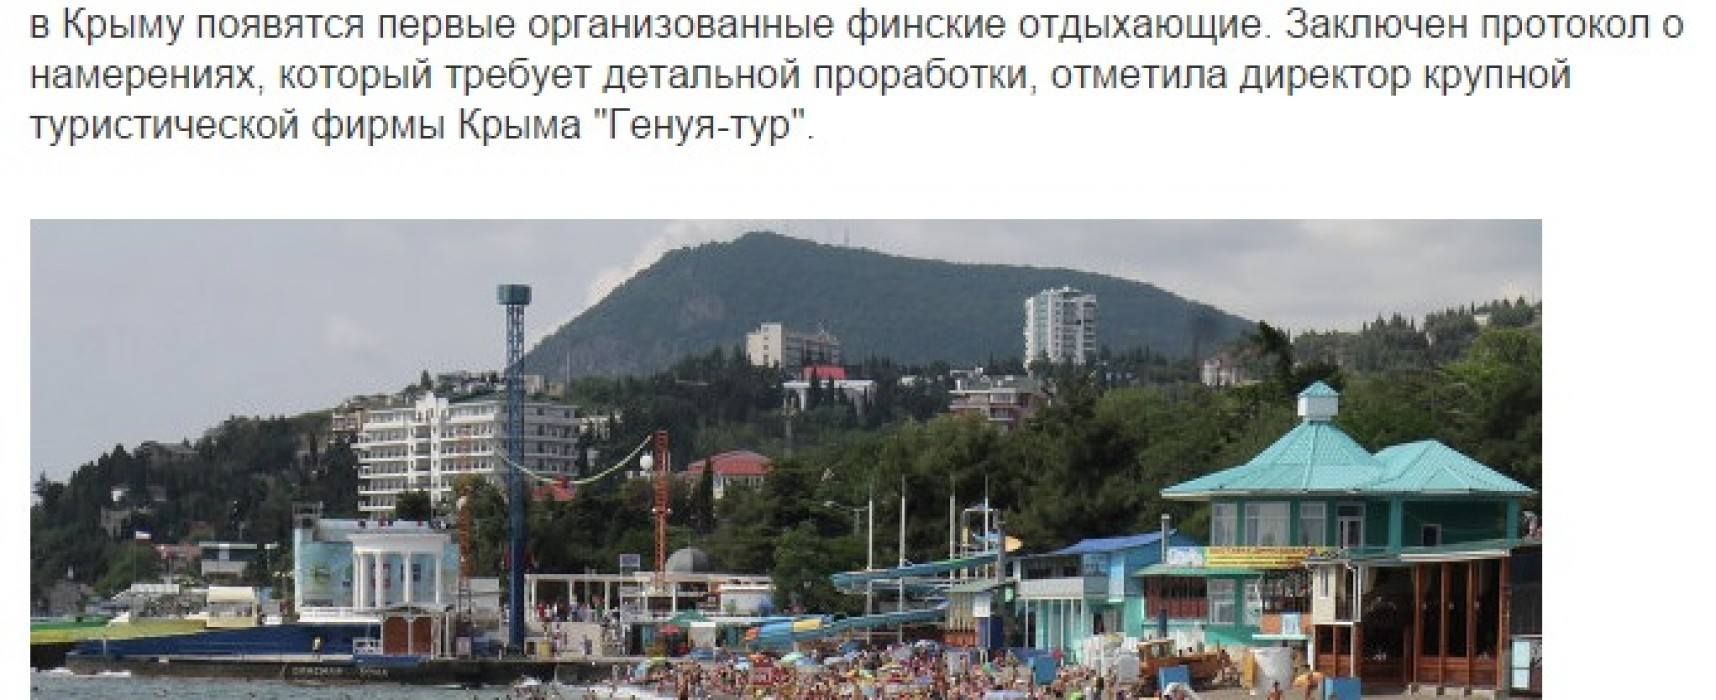 The Manager of the Finnish Travel Agency Refuted Information of RIA Novosti About Travel Tours to Crimea